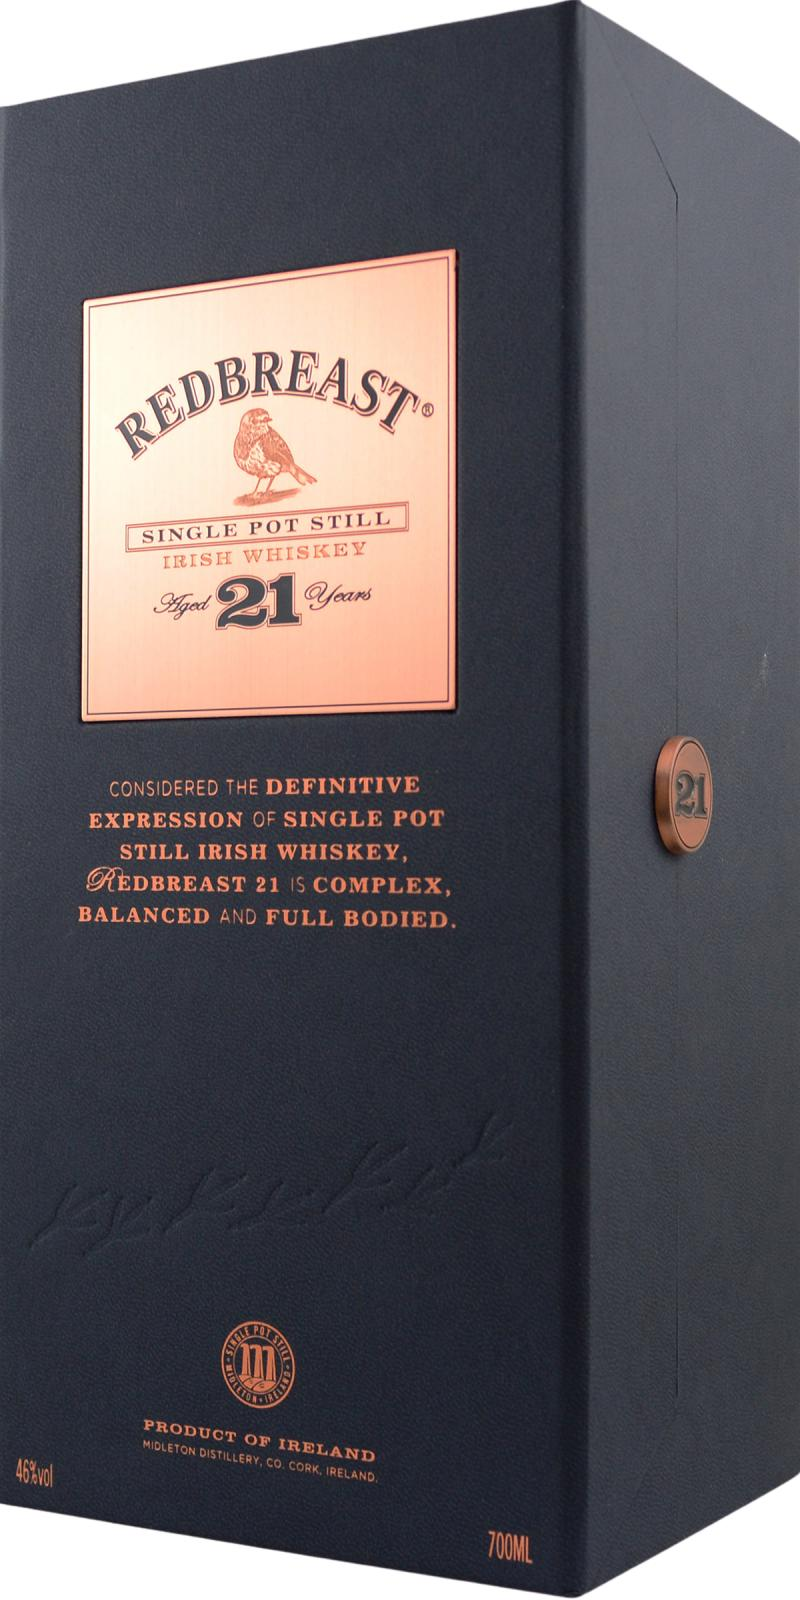 Redbreast 21-year-old